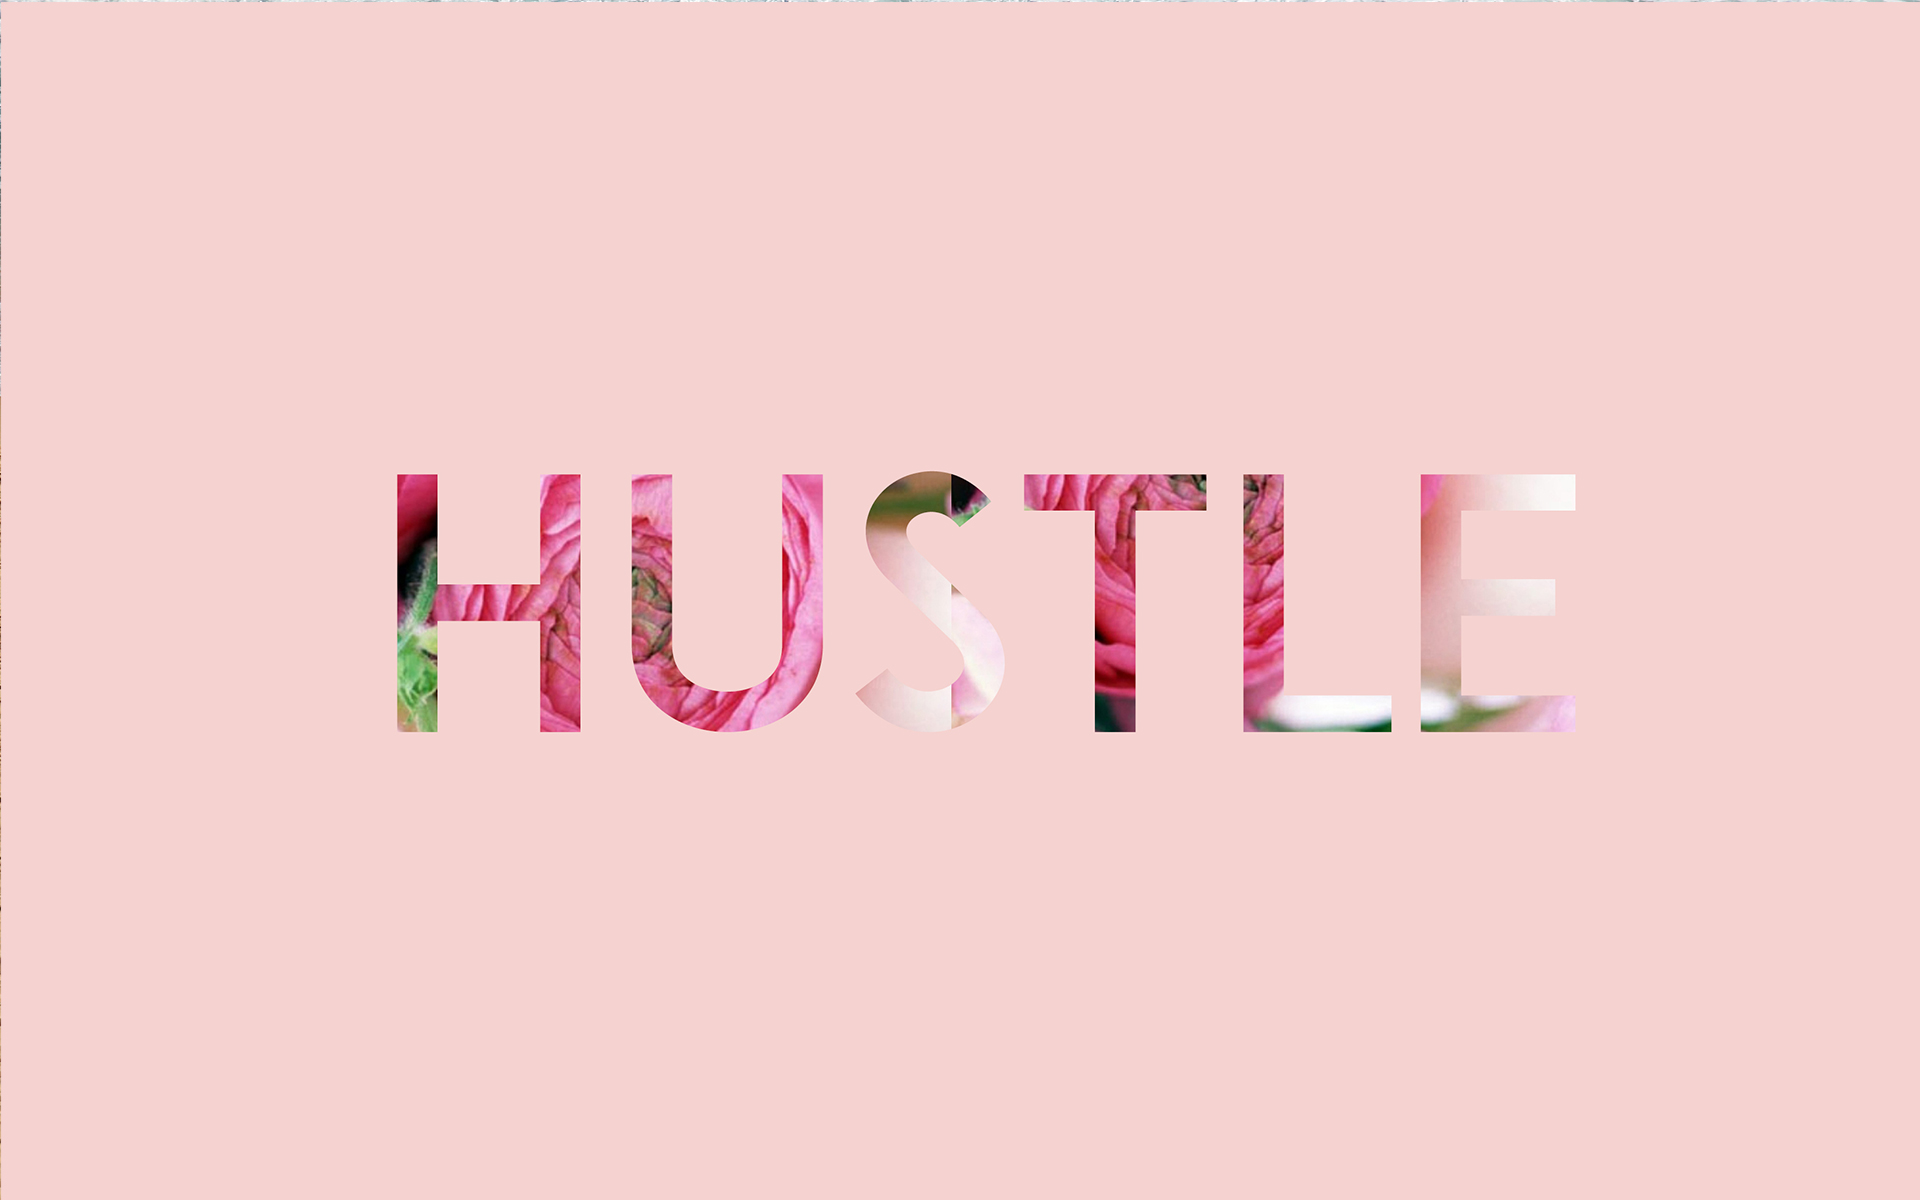 Inspirational Quote Wallpaper For Computer Dress Your Tech Friday Hustle